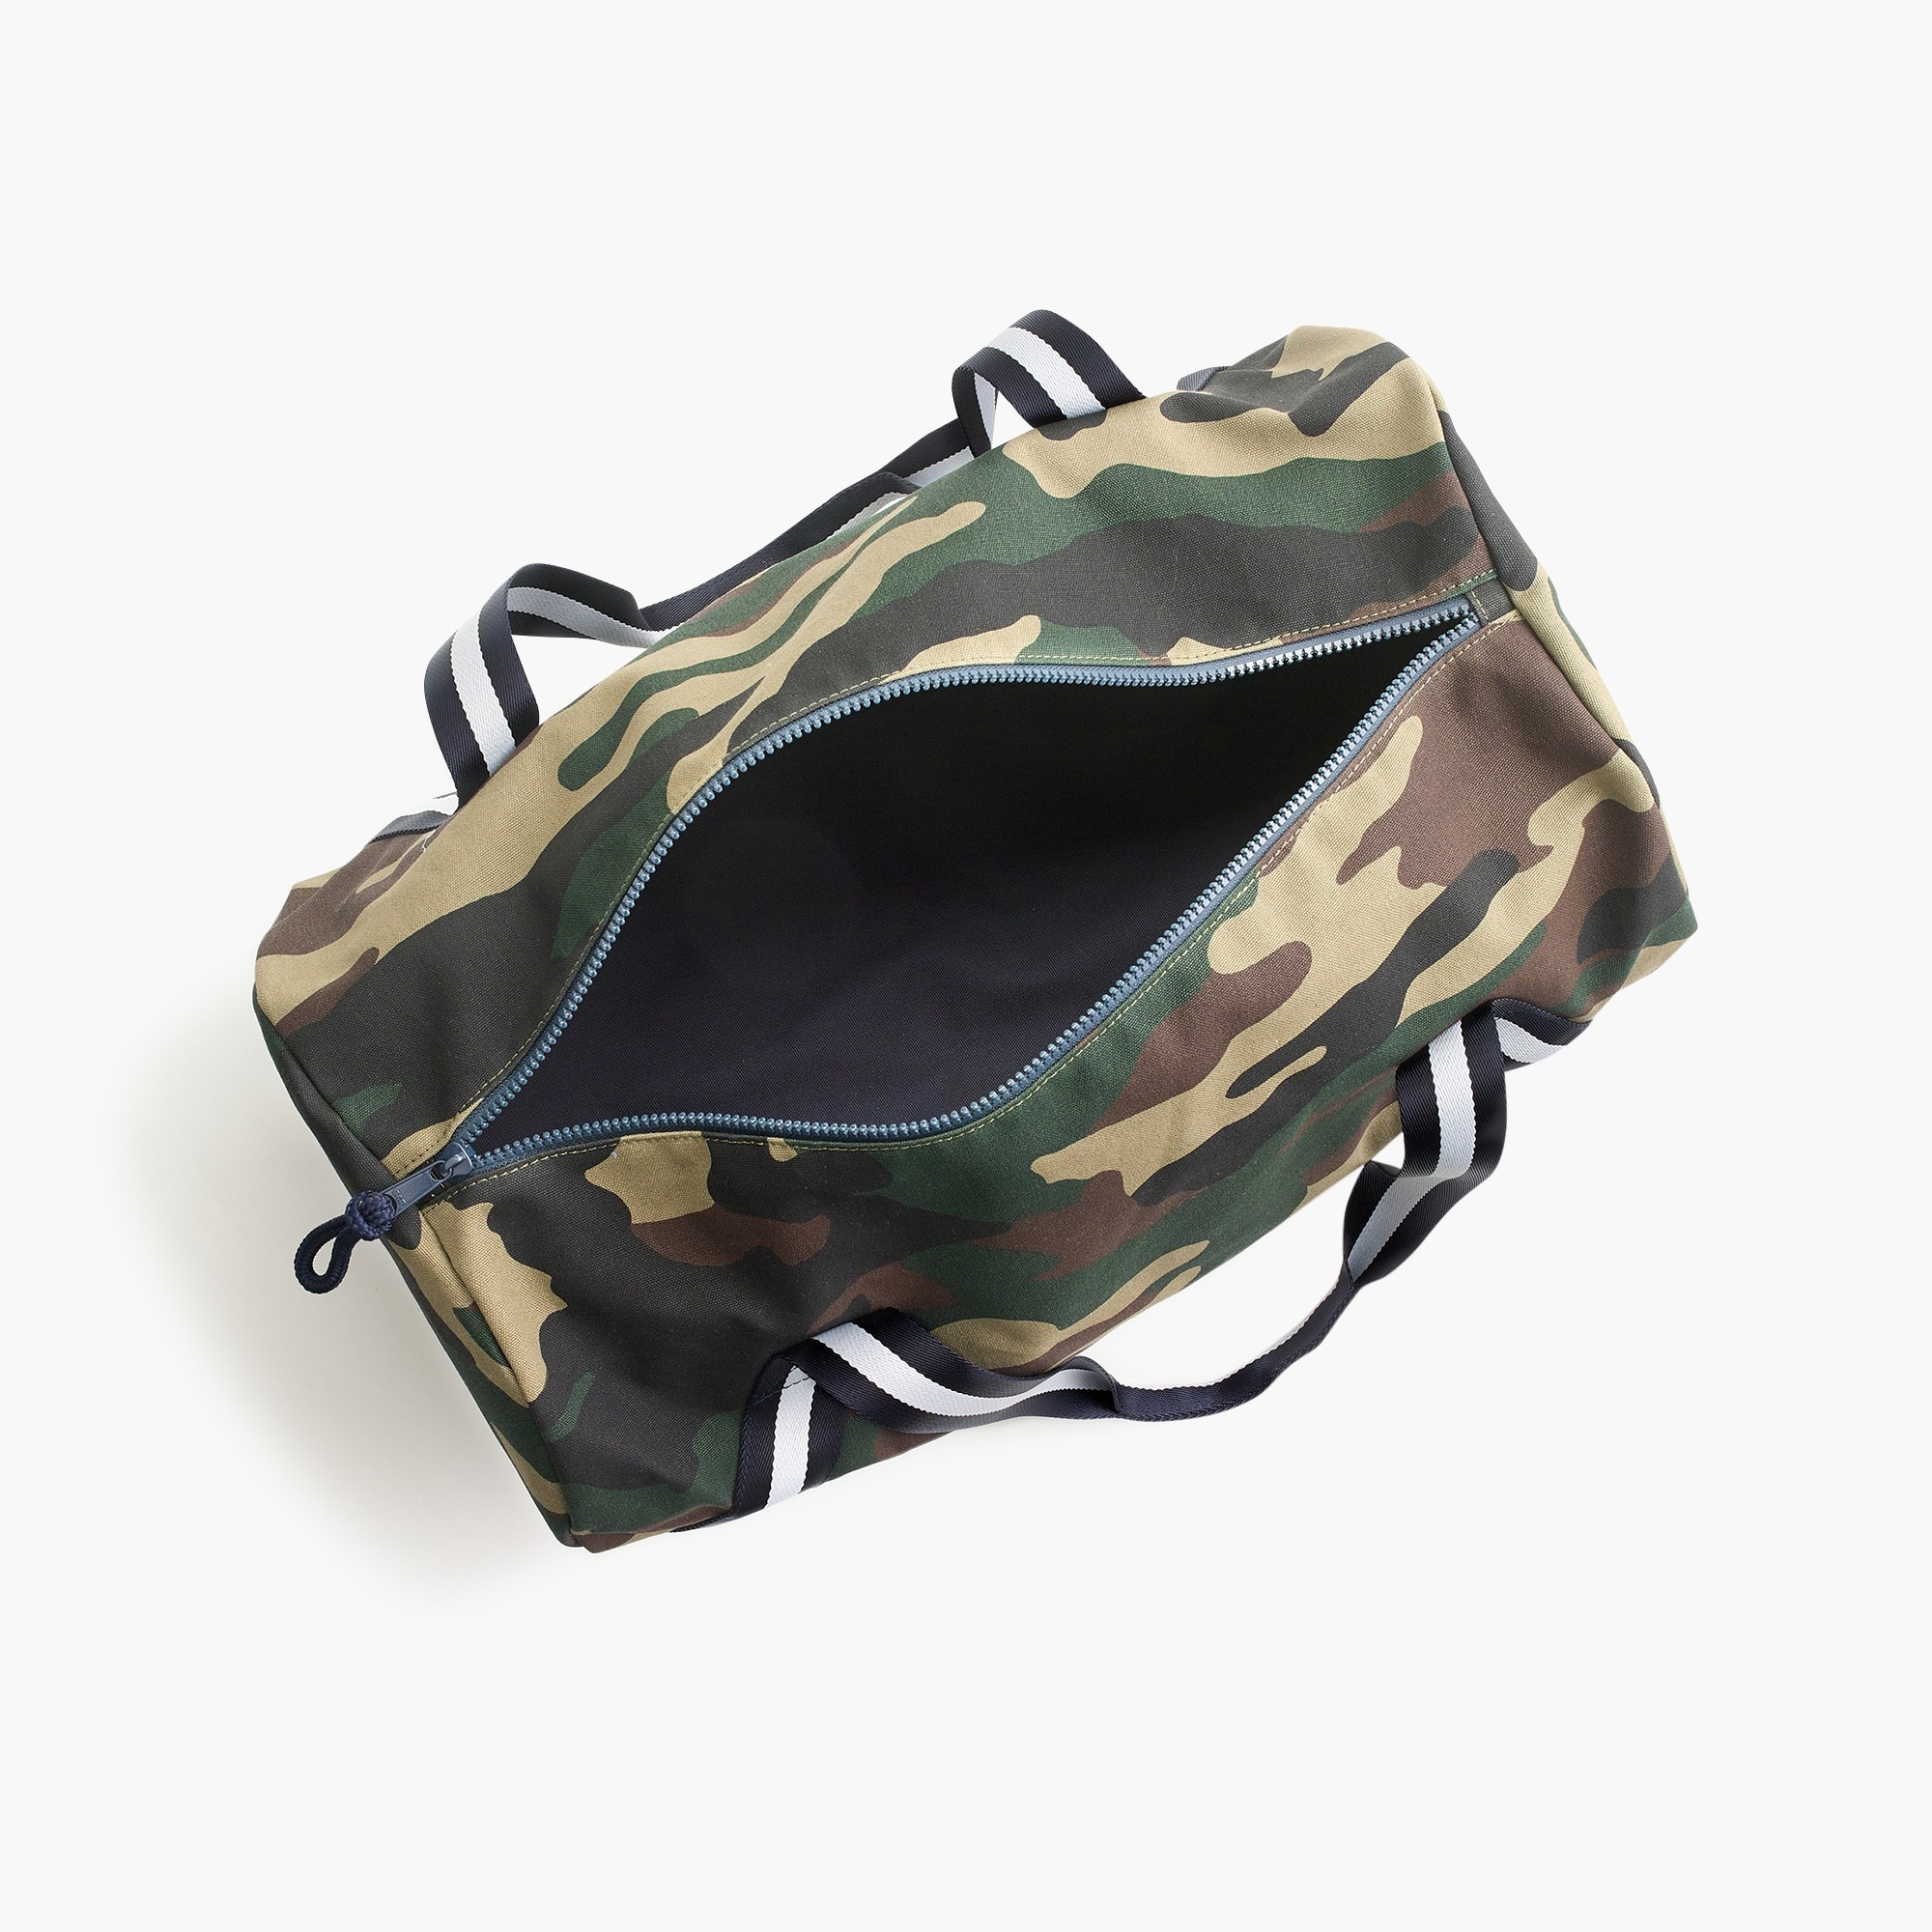 Image 1 for Kids' overnight bag in camo